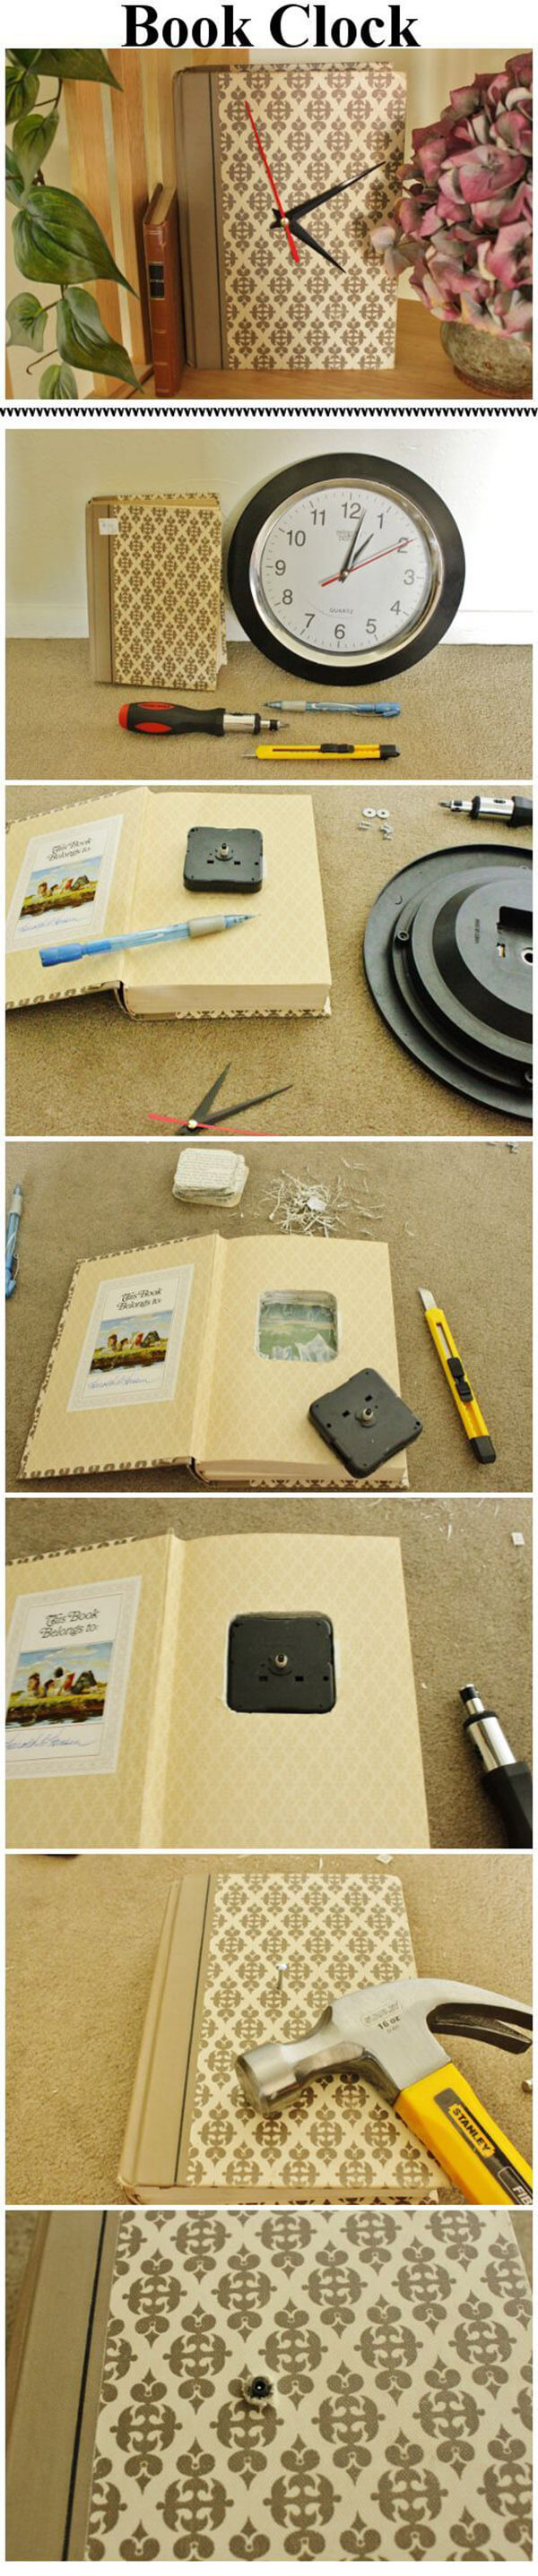 26 Enchanting DIY Old Book Craft-Ideen zur Wiederverwendung alter Bücher